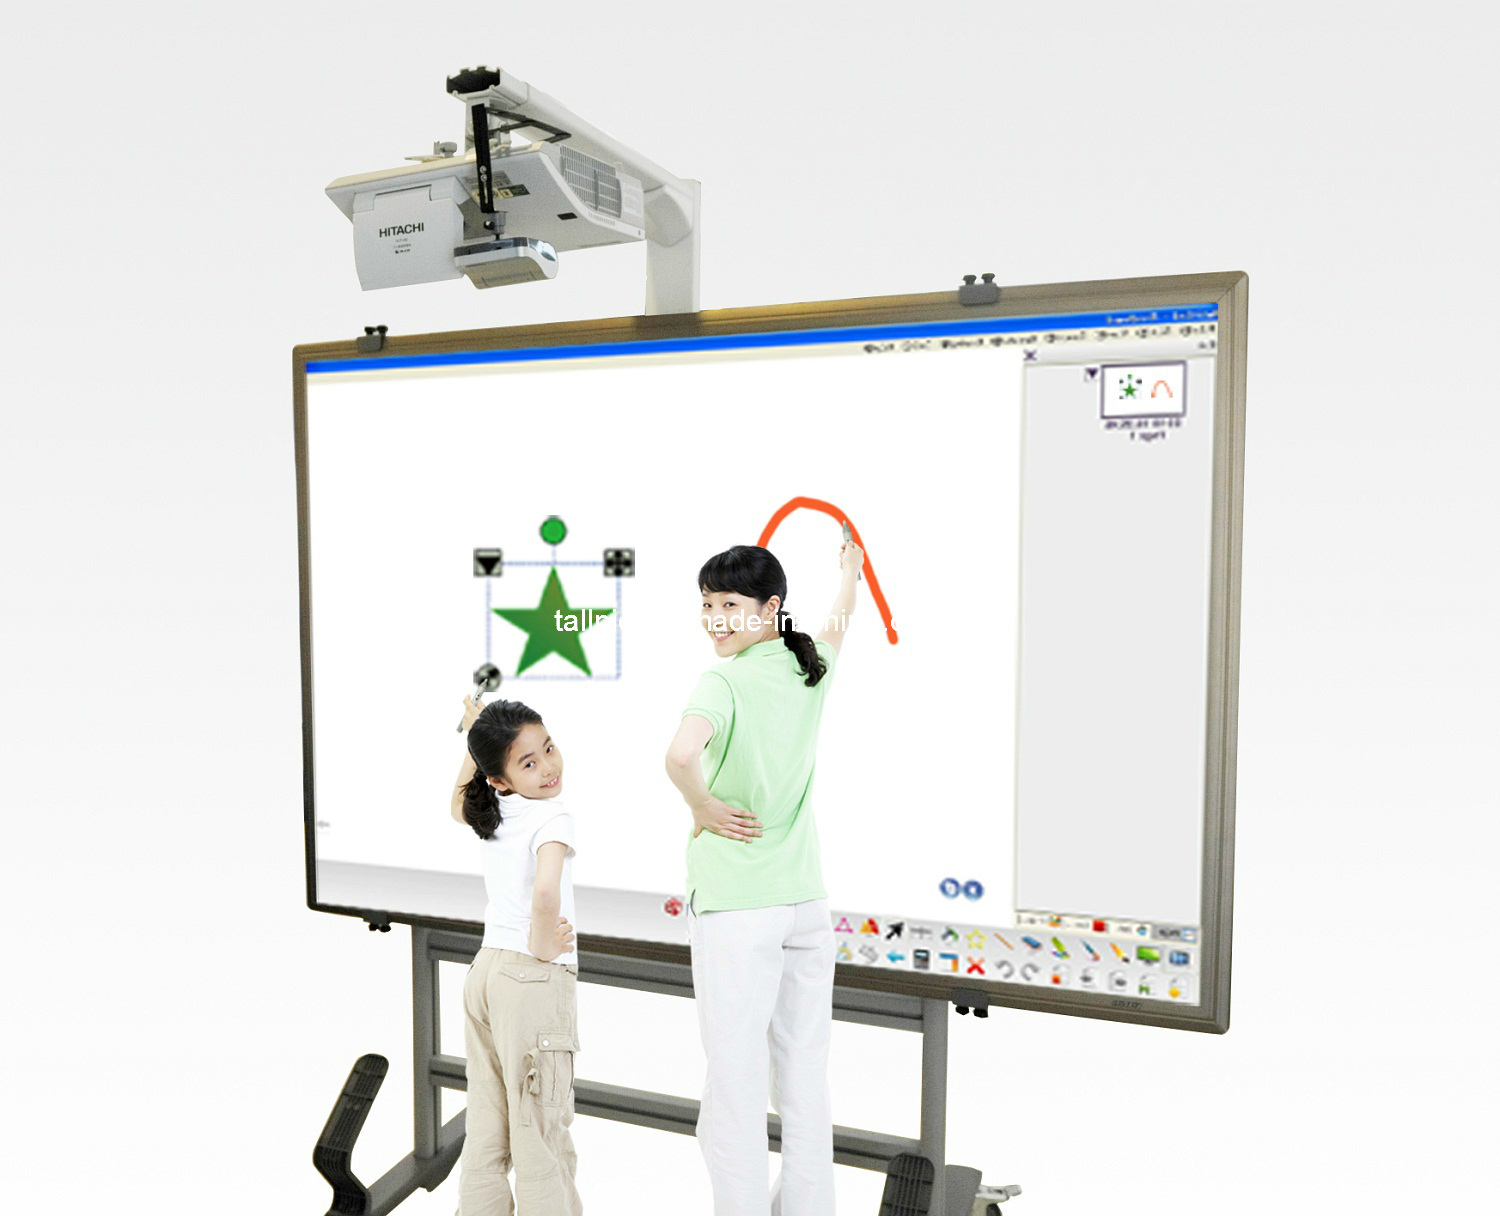 Synchronized Interactive Whiteboard System